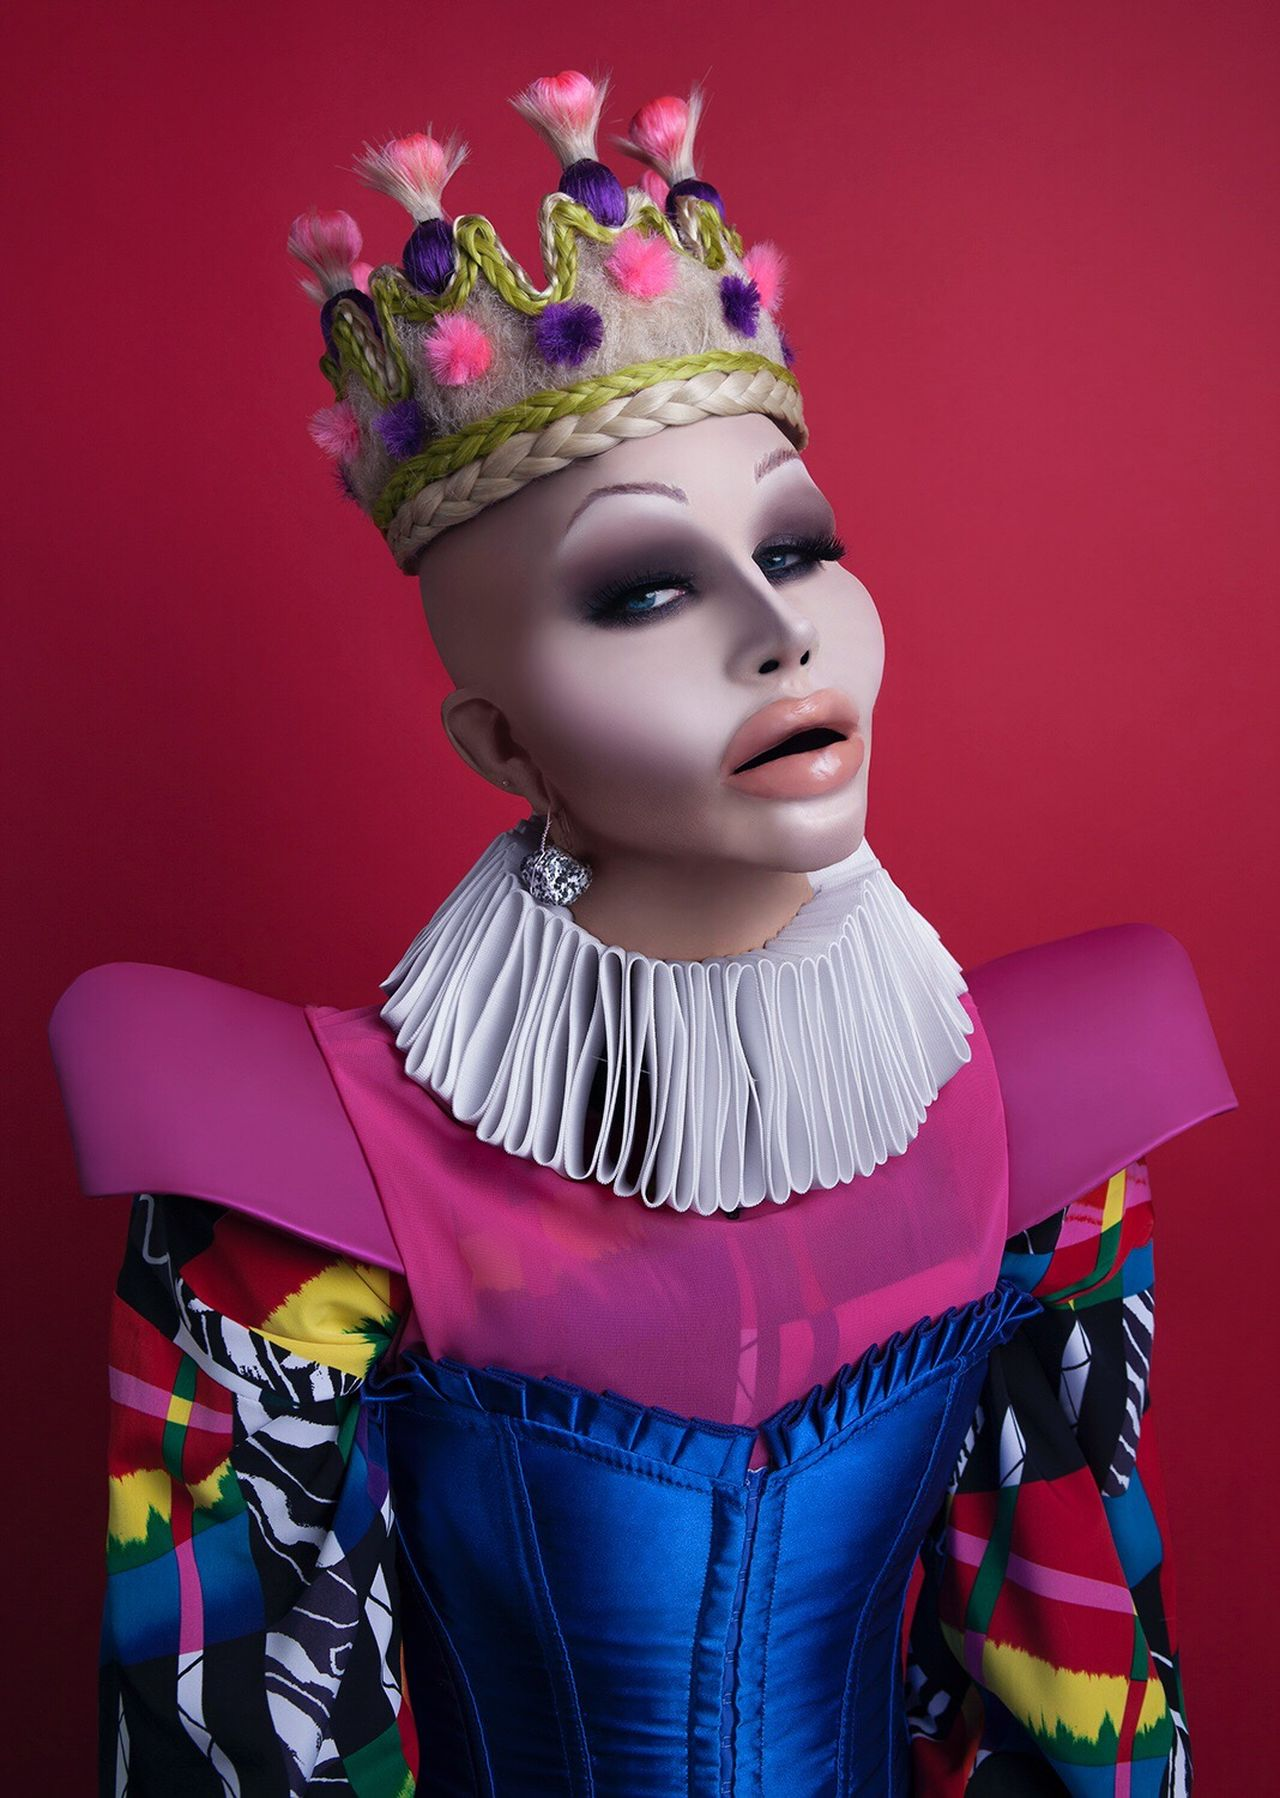 Self portrait. 💋 makeup/prosthetics/magician: Joel King. Hair crown: Heather Werner. Blouse and collar: Rachel Riot. Female Likeness Beauty One Person Indoors  Day Self Portrait Queen Bald Botched Plastic Surgery Makeup Overdone Gender Gender Roles Satire